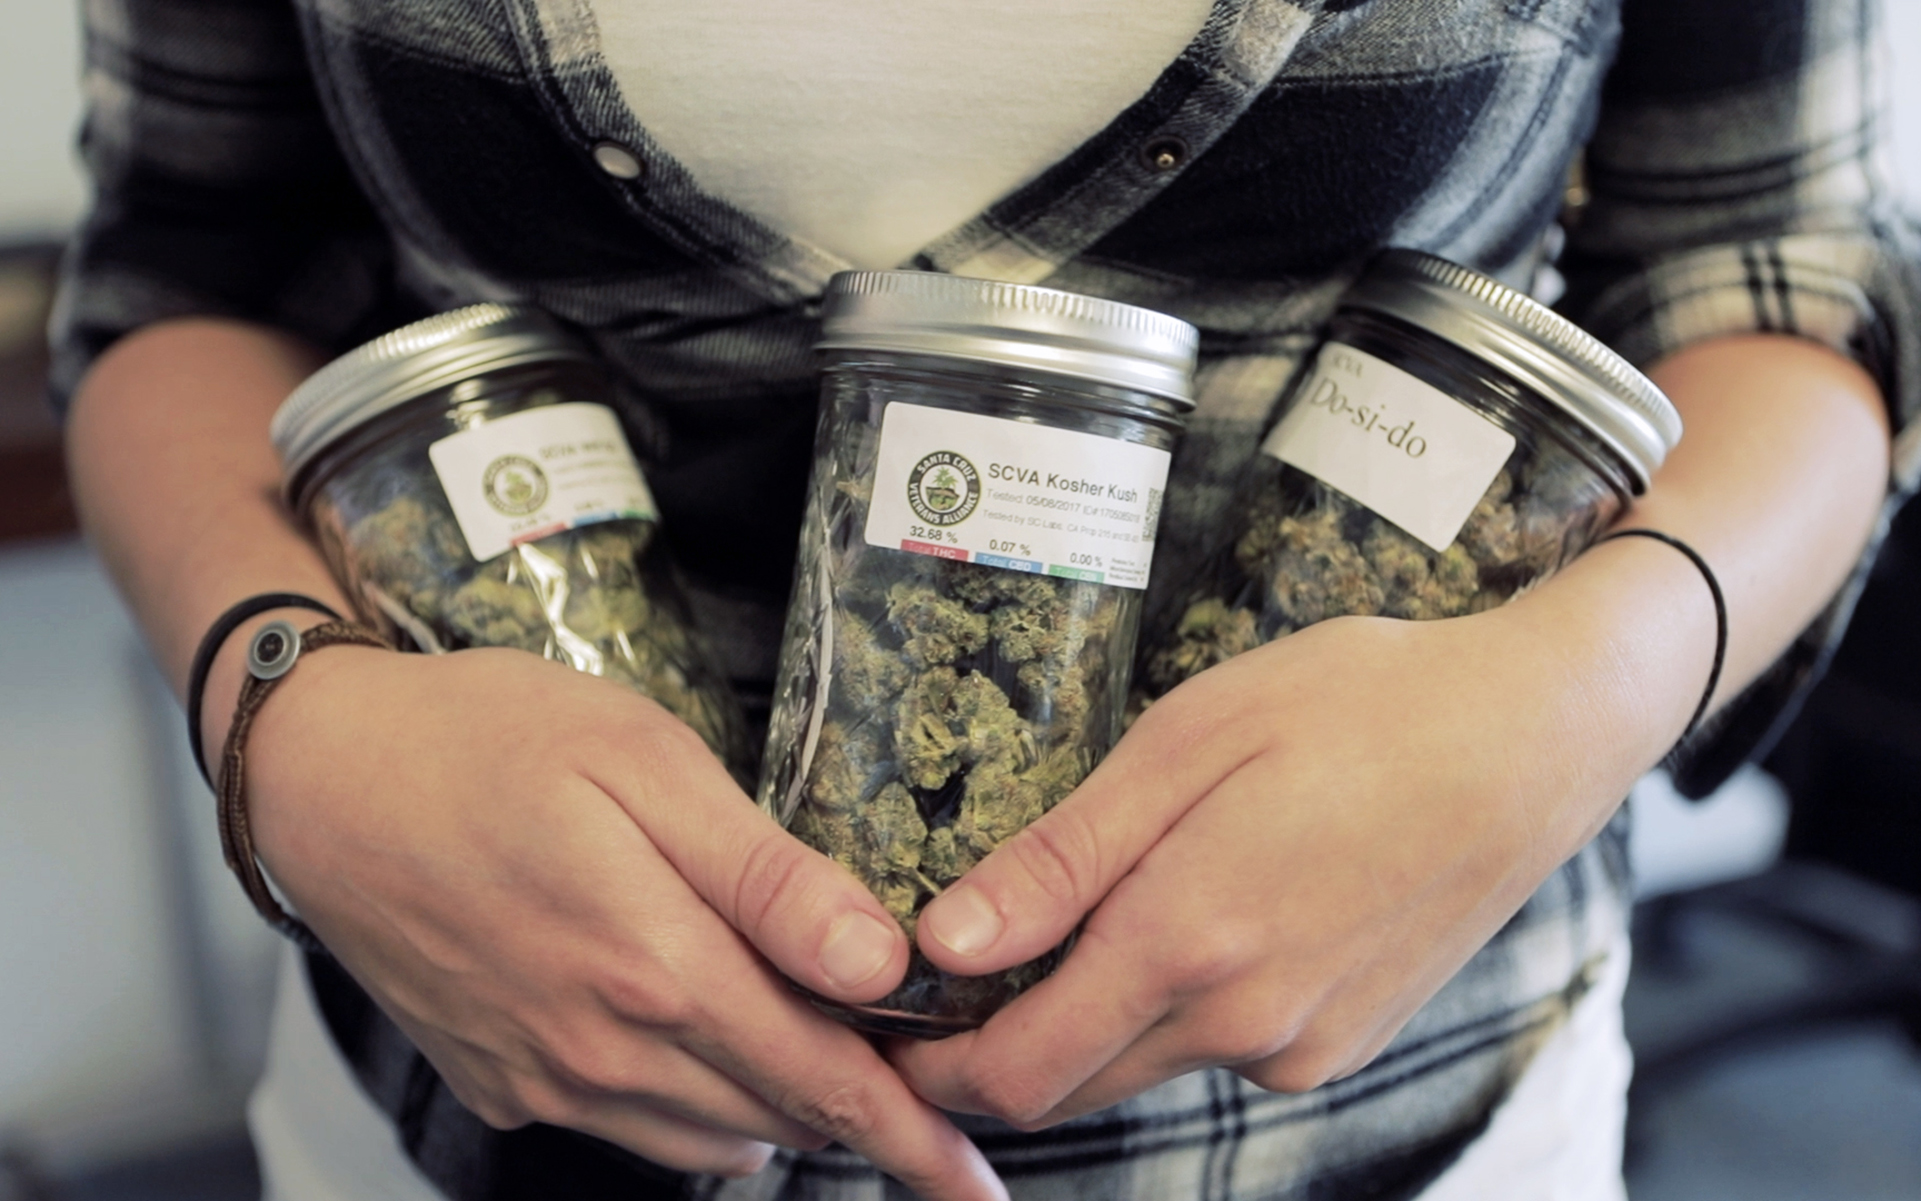 The VA Can't Provide Cannabis to Veterans With PTSD, so This